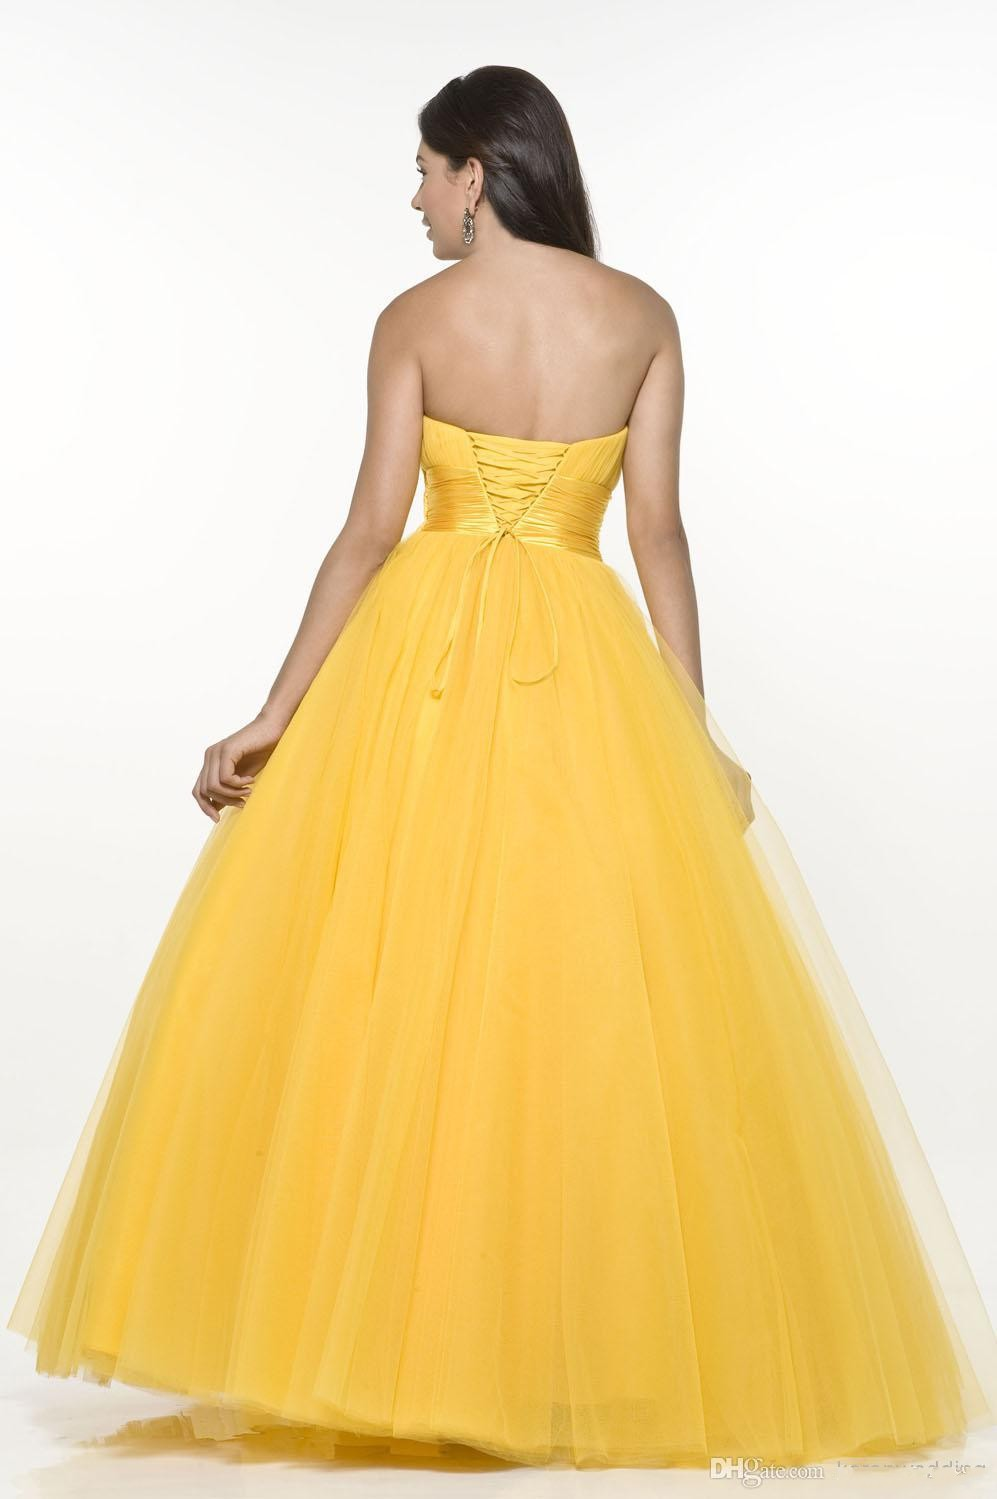 New-Design-Yellow-Quinceanera-Dresses-2015-Ball-Gown-Strapless-Sweet-16-Dress-Party-Prom-Gowns (1).jpg